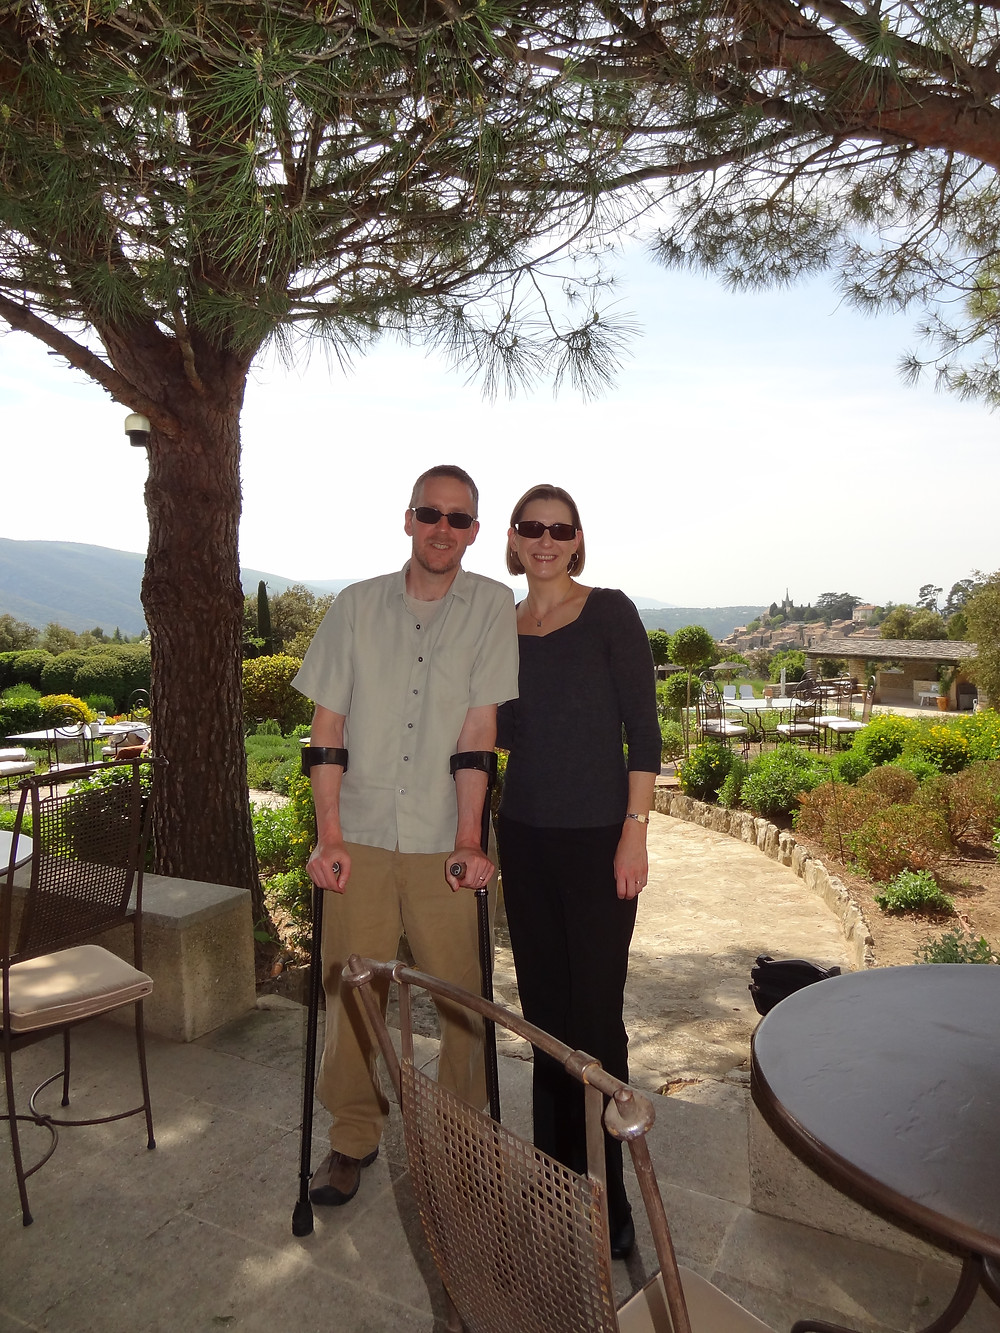 Man with forearm crutches and woman in French vineyard